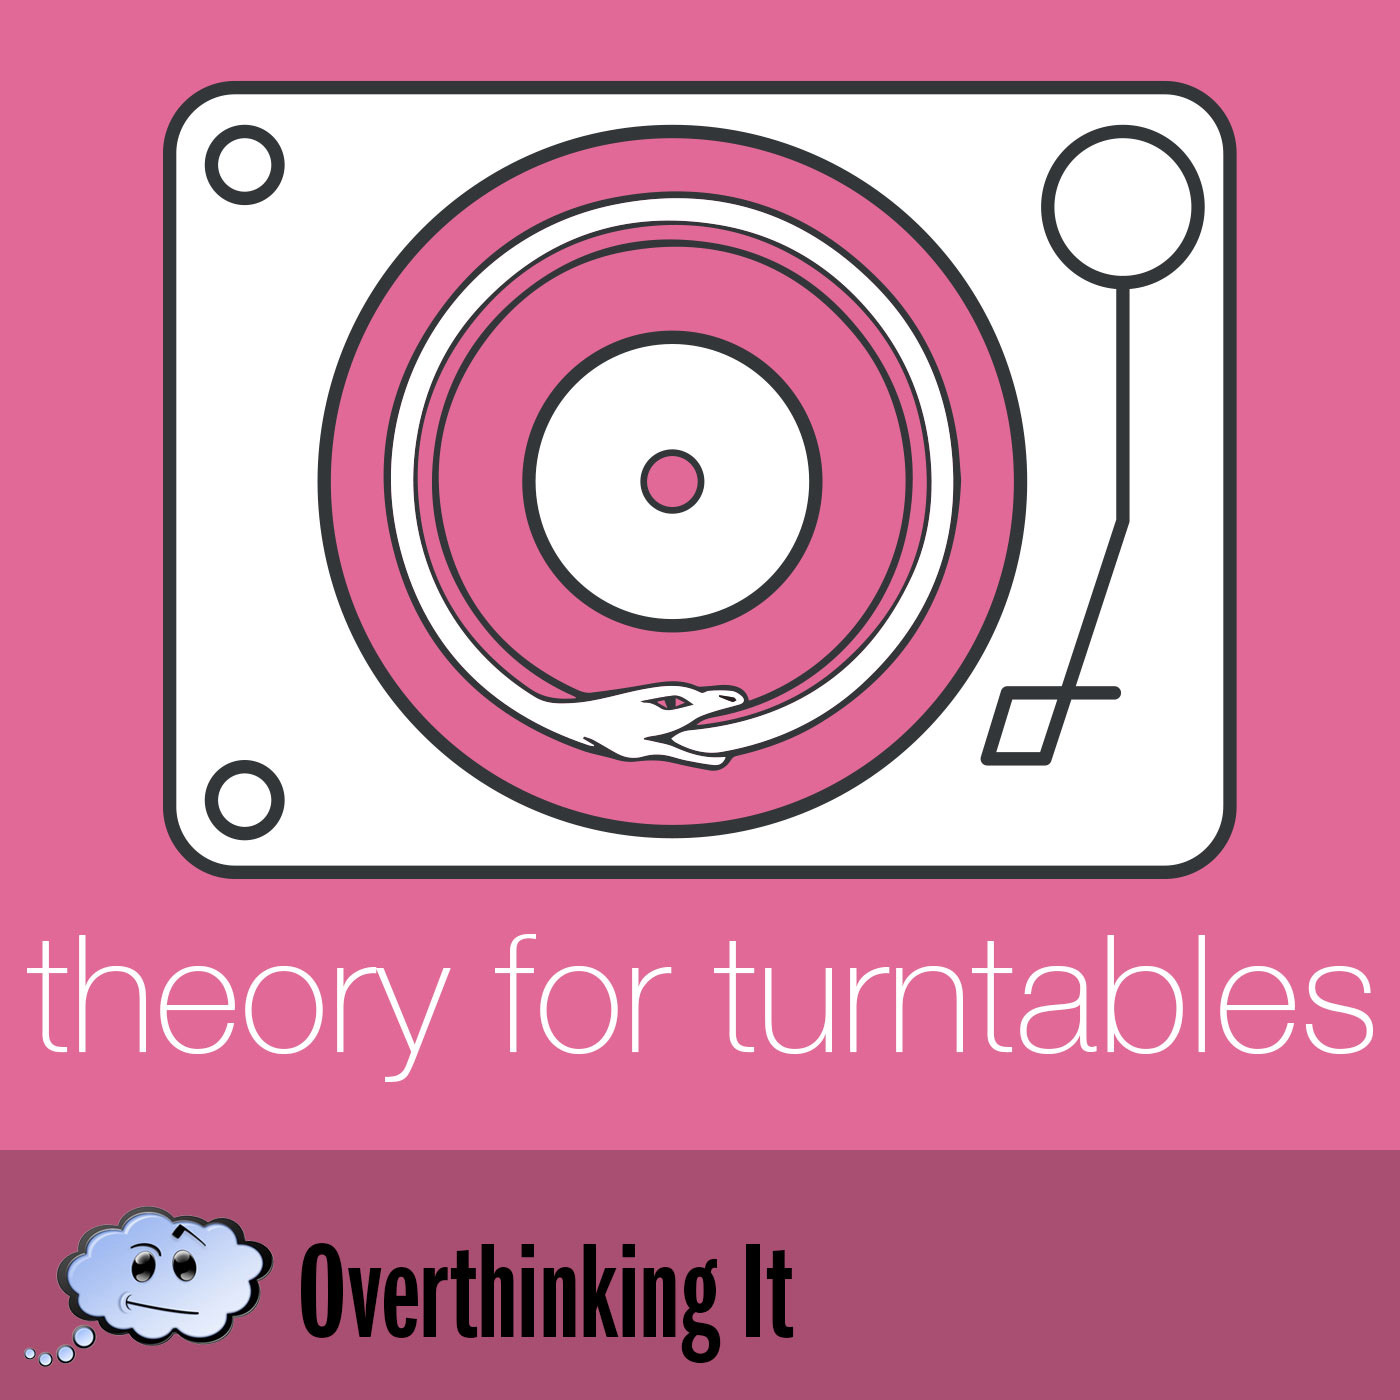 Theory For Turntables (TFT) Podcast by Overthinking It on